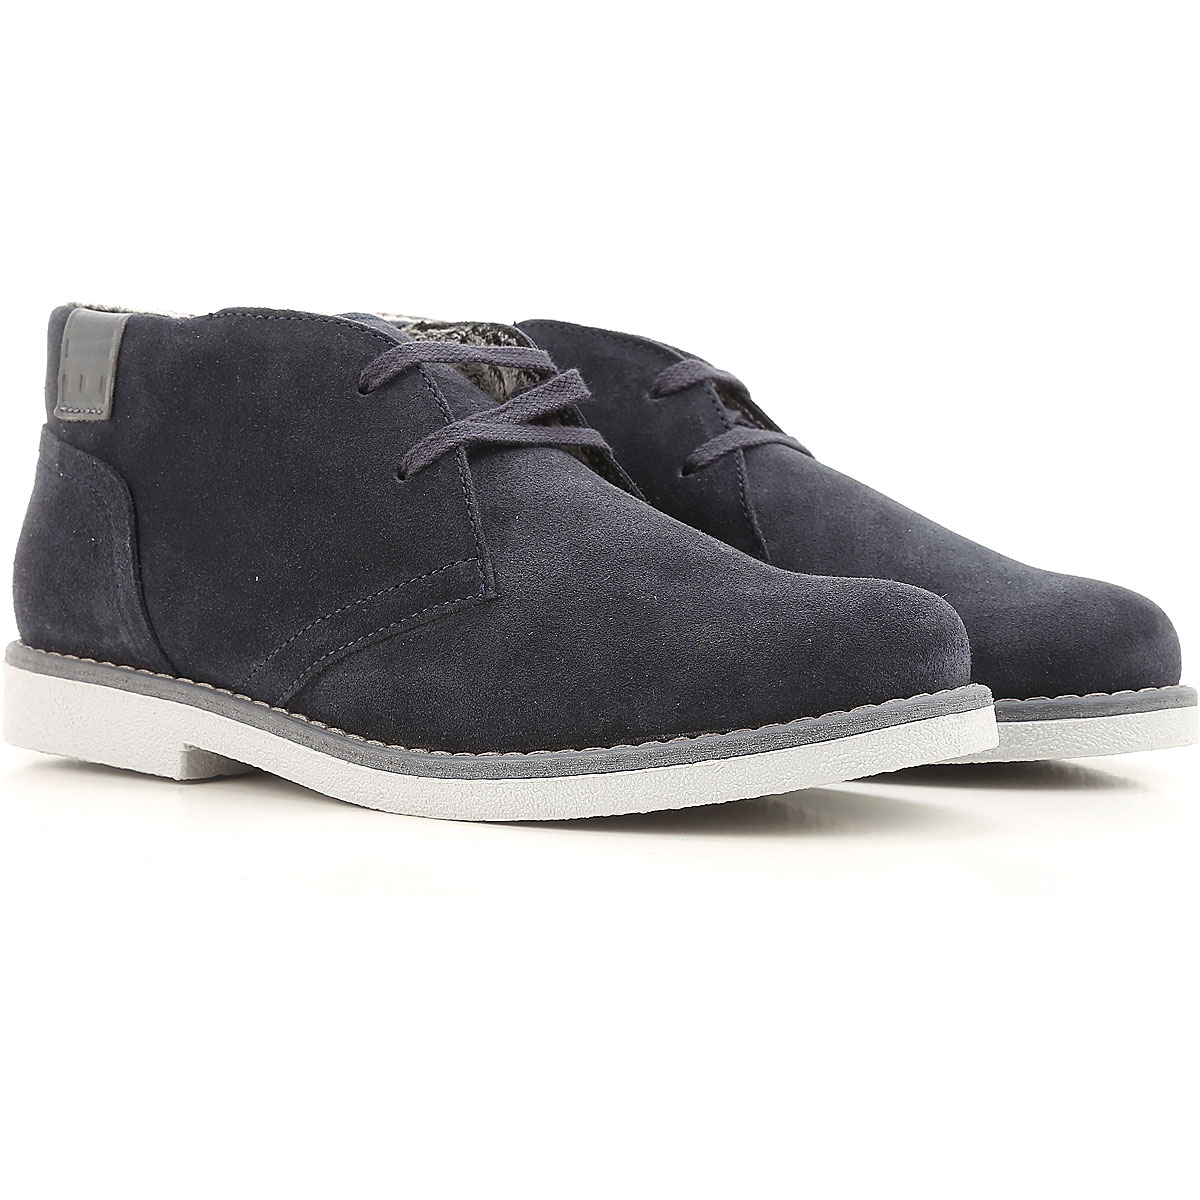 Dirk Bikkembergs Kids Shoes for Boys On Sale in Outlet, Blue, suede, 2019, 28 30 33